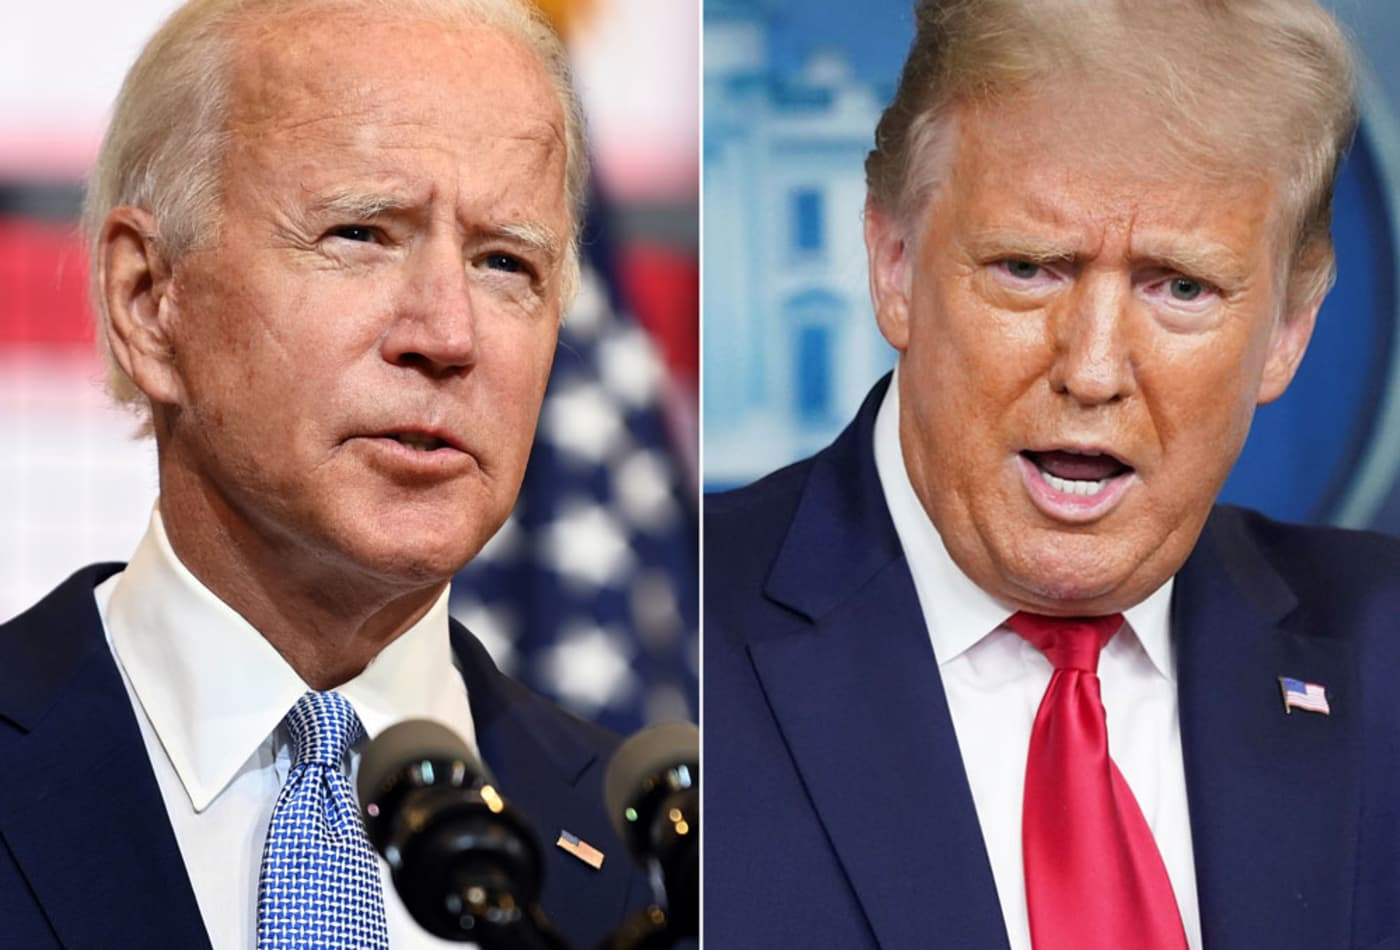 Here are the states Trump and Biden will visit in the final days of the election